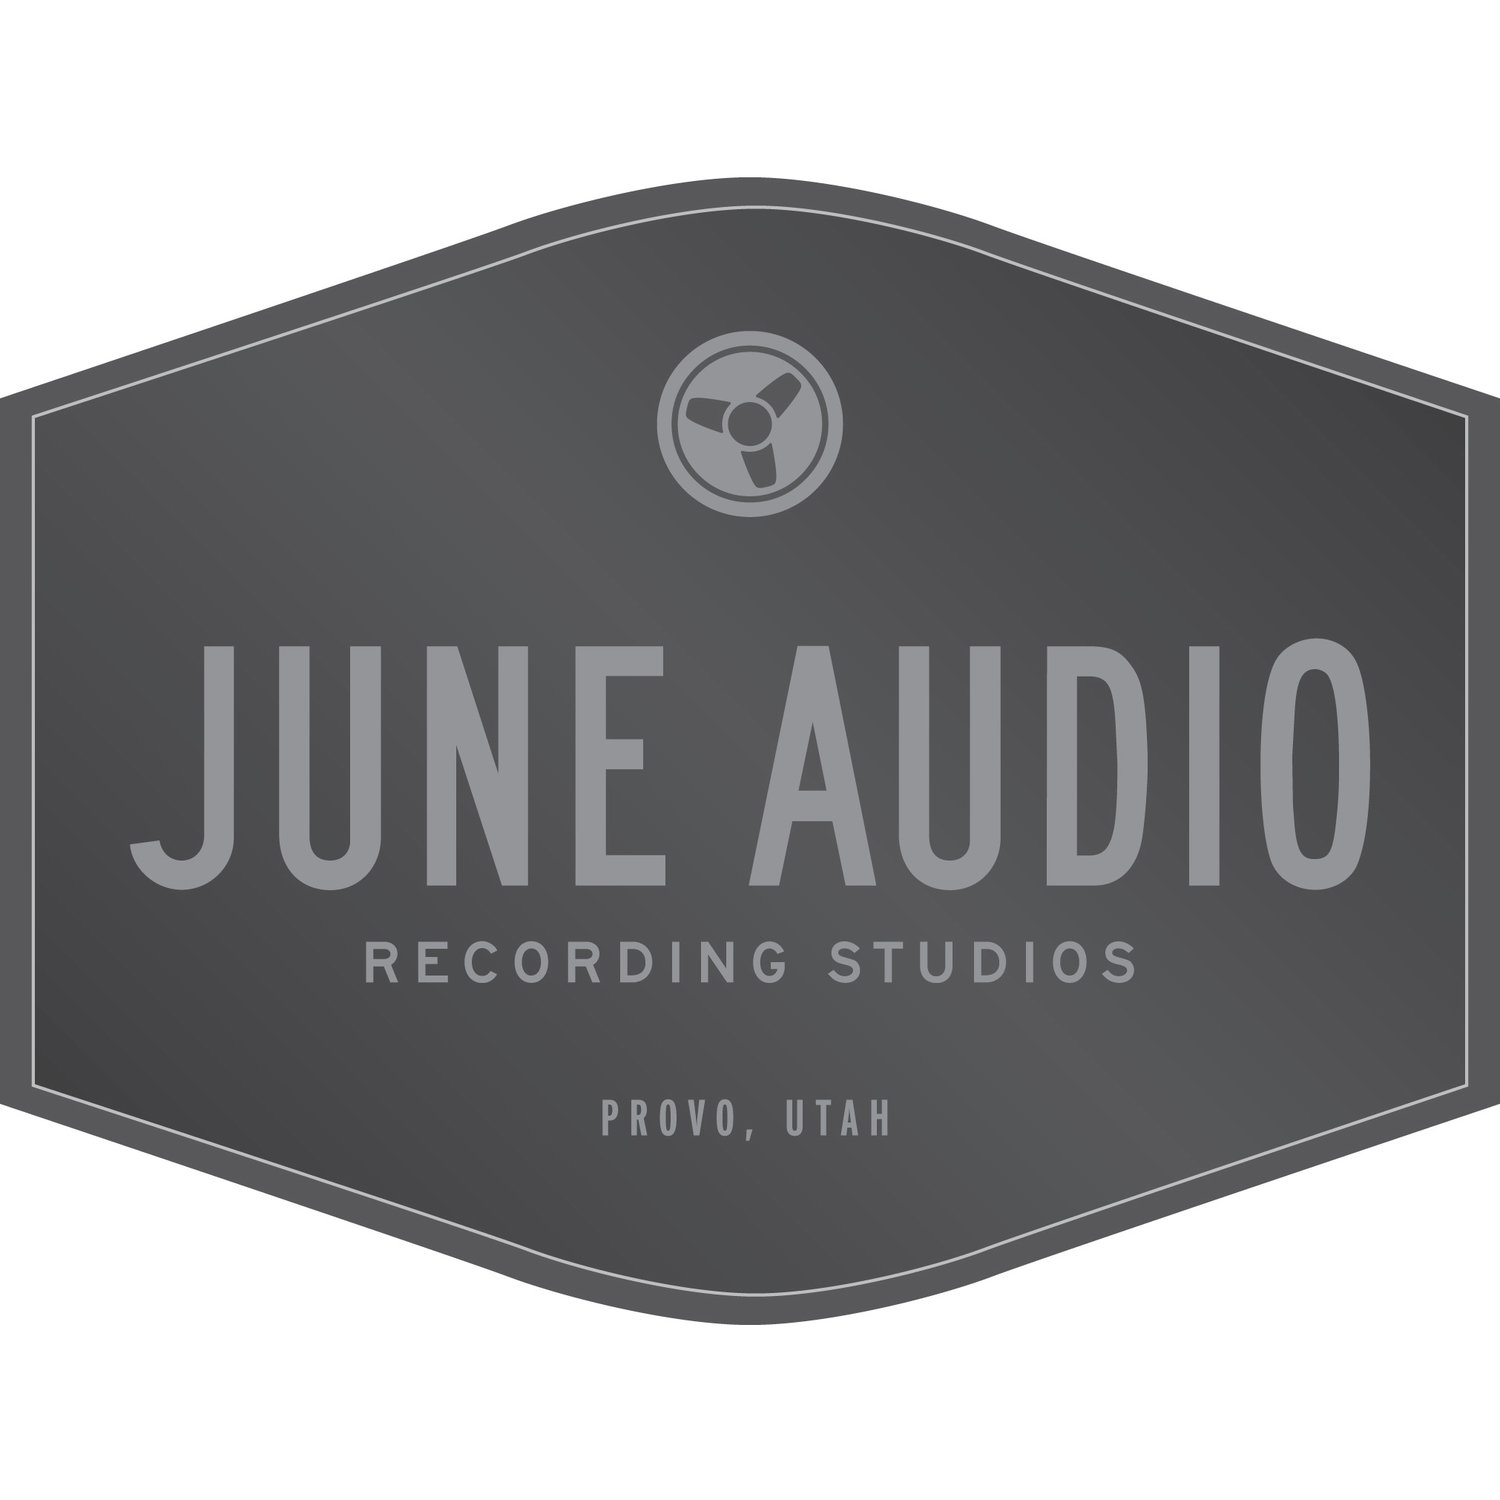 June Audio Recording Studios